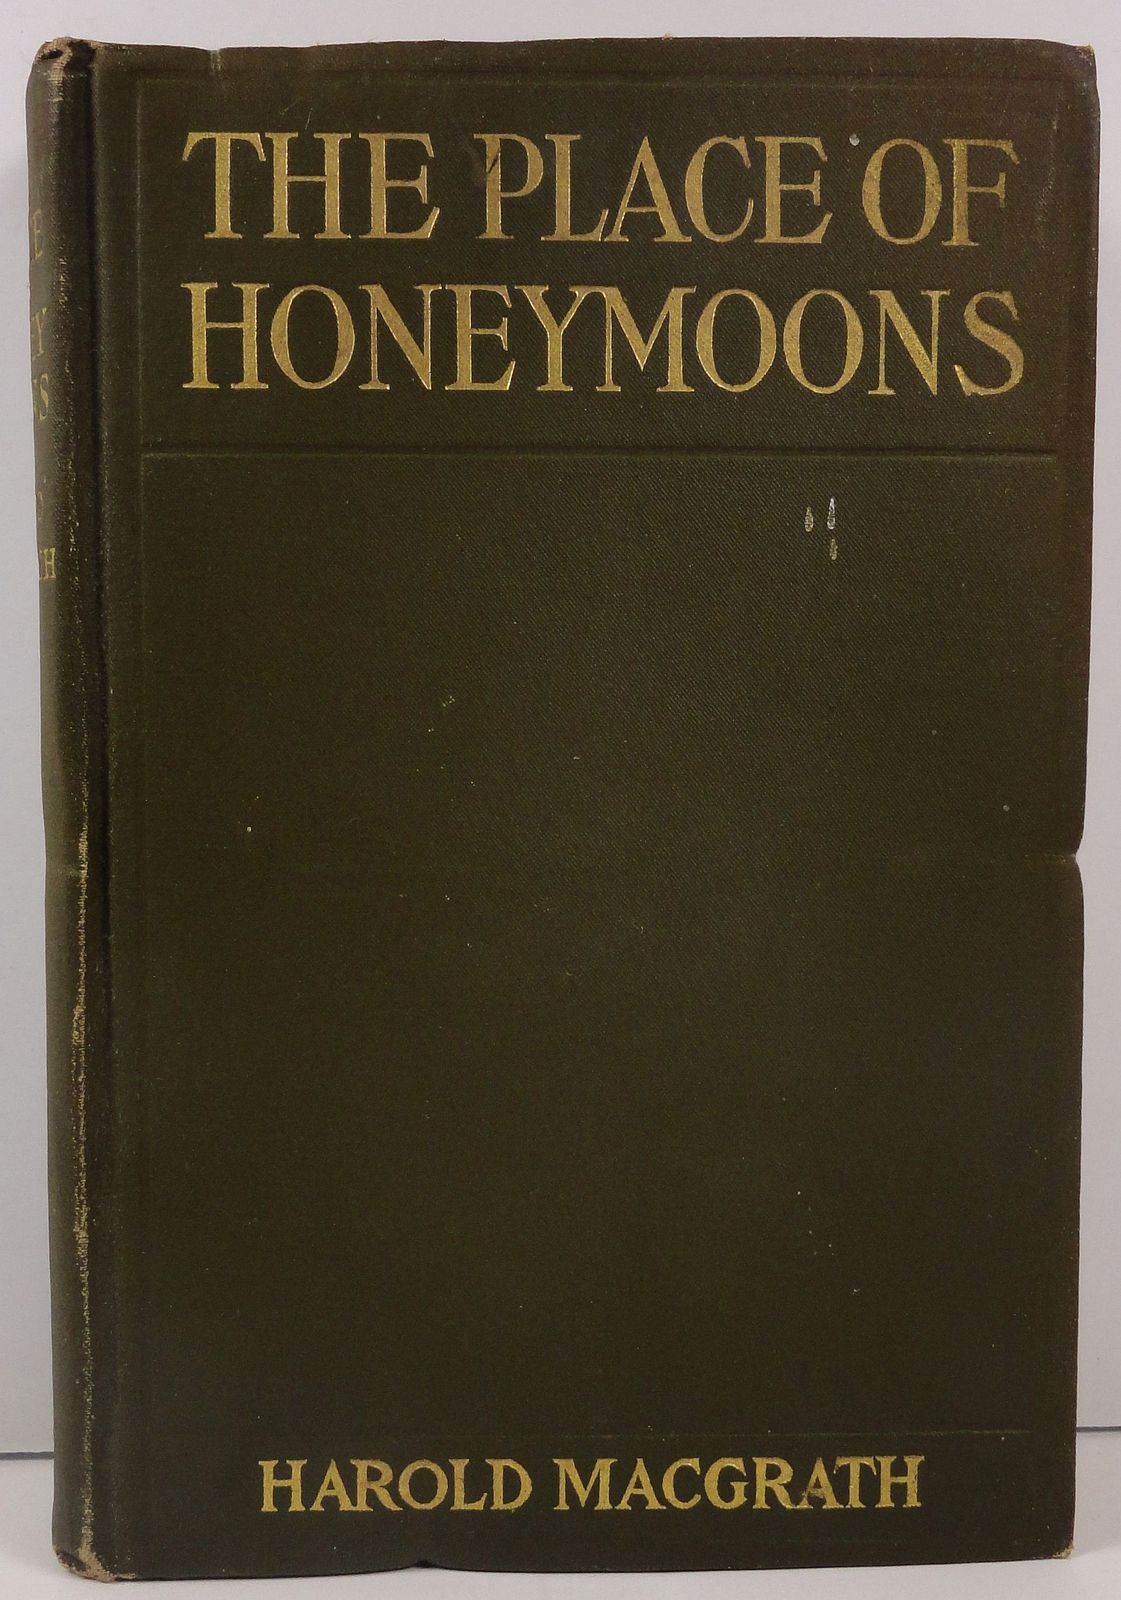 The Place of Honeymoons by Harold MacGrath